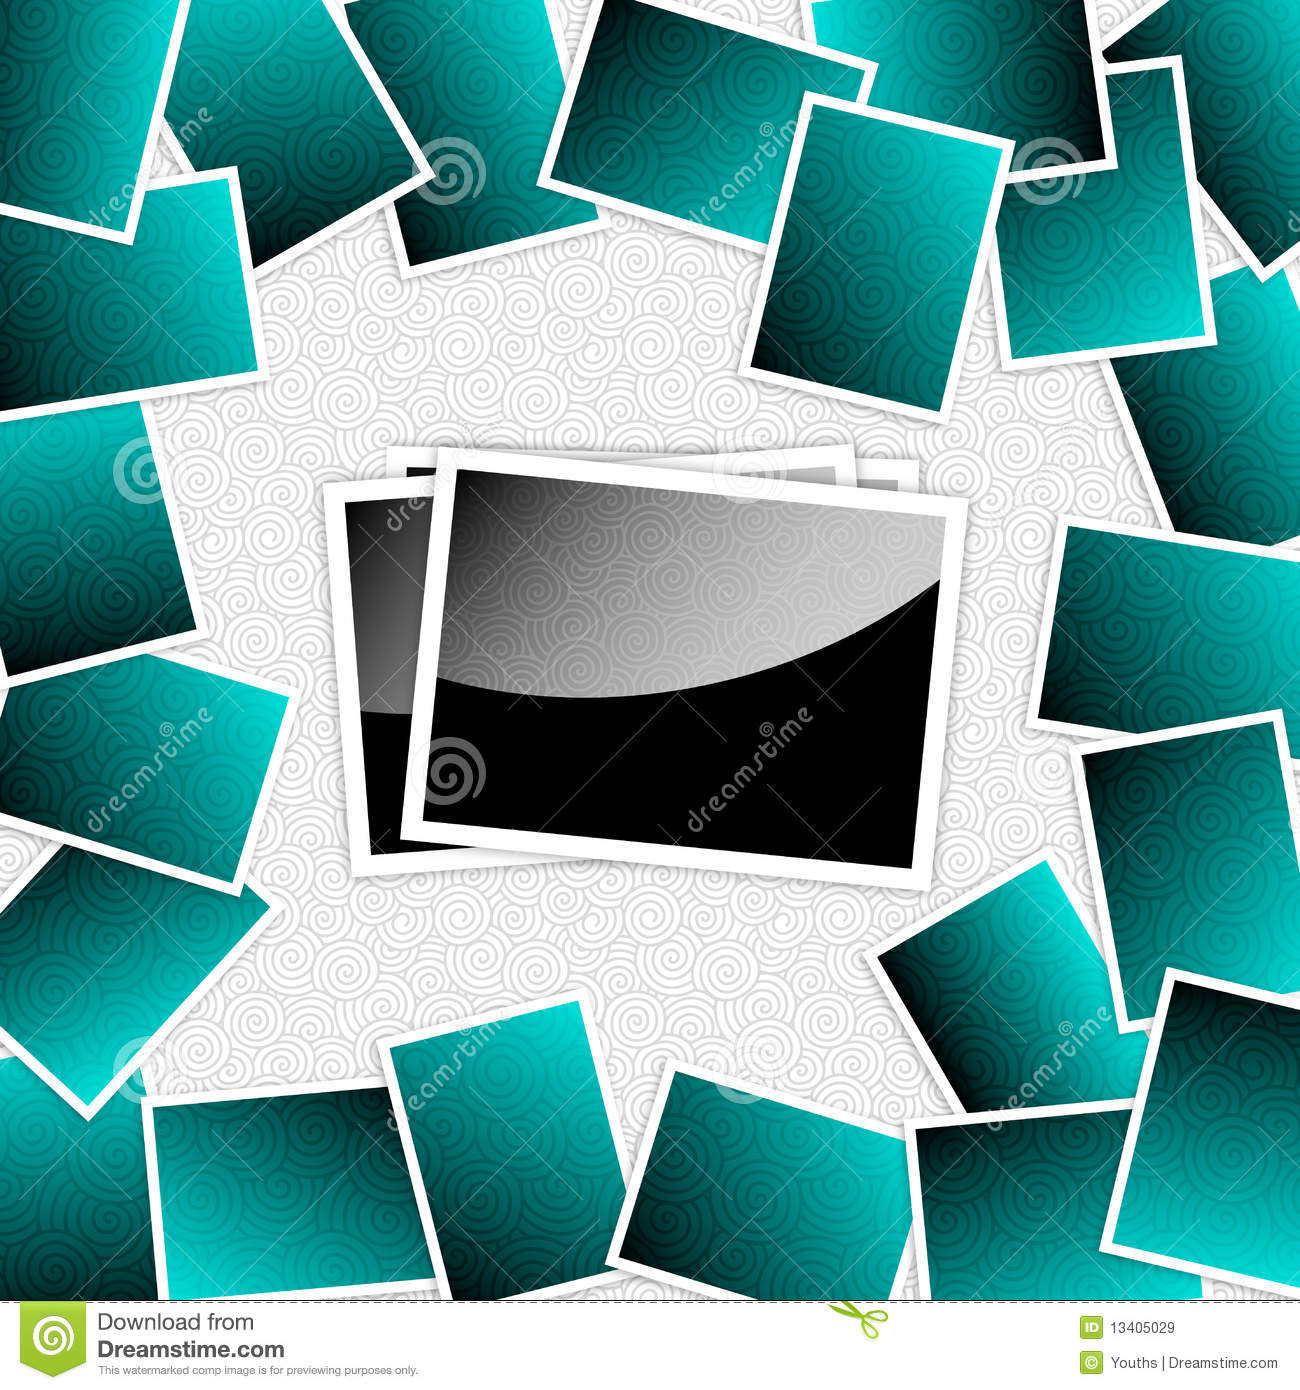 free online photo collage templates - vector photos template frames stock vector illustration